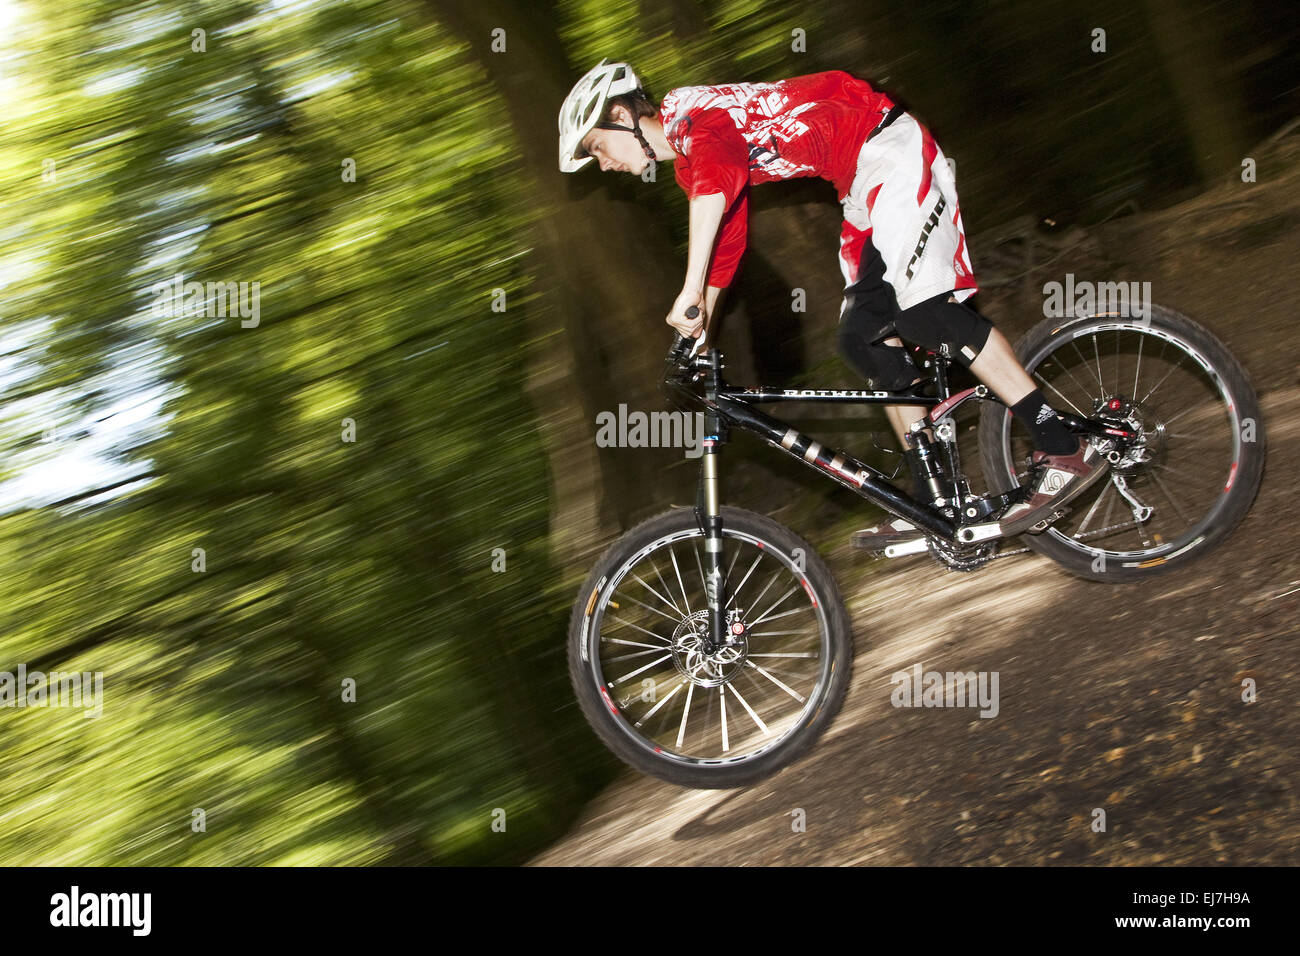 Mountain cyclists, Witten, Germany - Stock Image